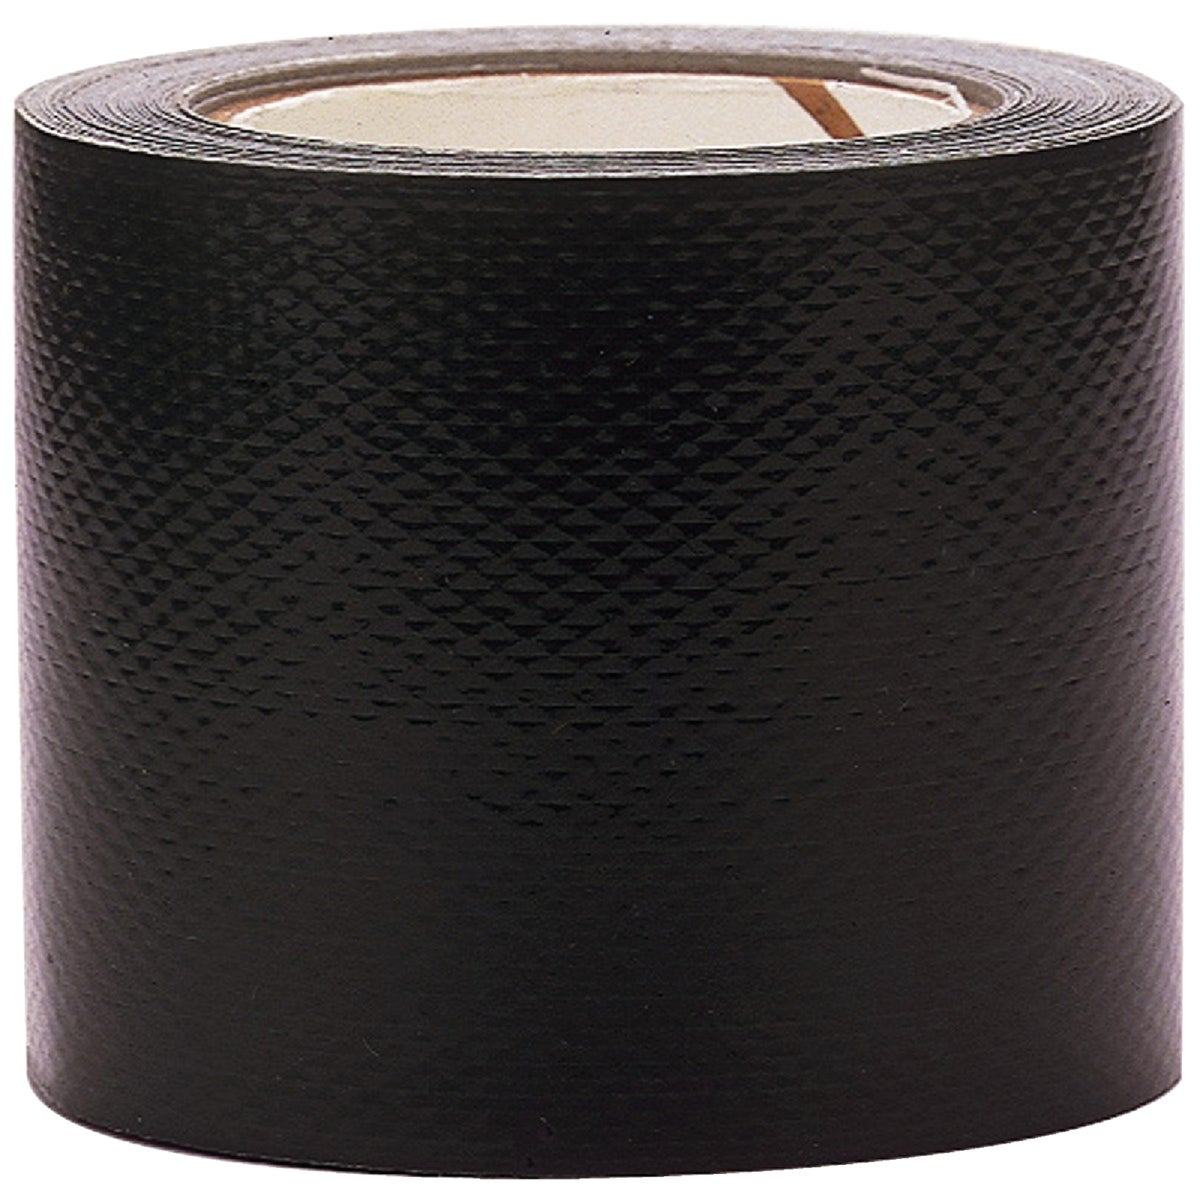 "2""X10' HOSE BANDAGE - 23331 by Custom Accessories"